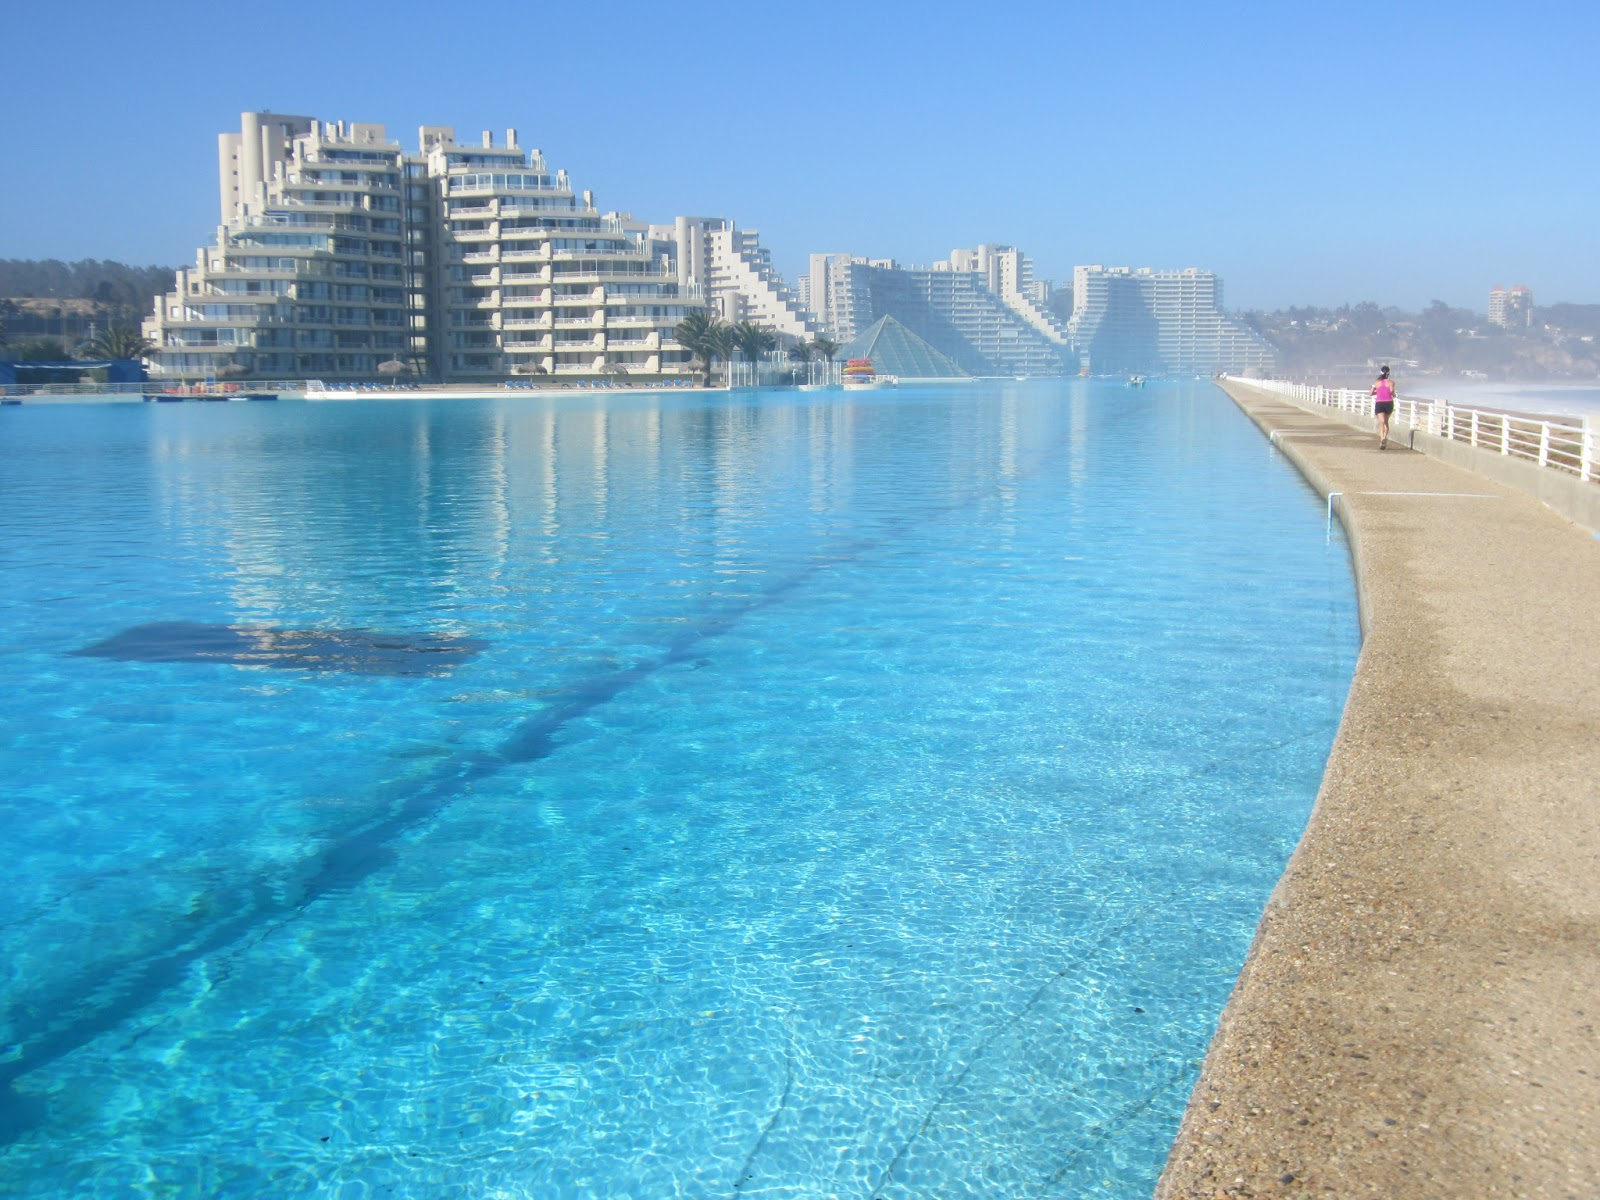 Tourism march 2013 - Where is the worlds largest swimming pool ...